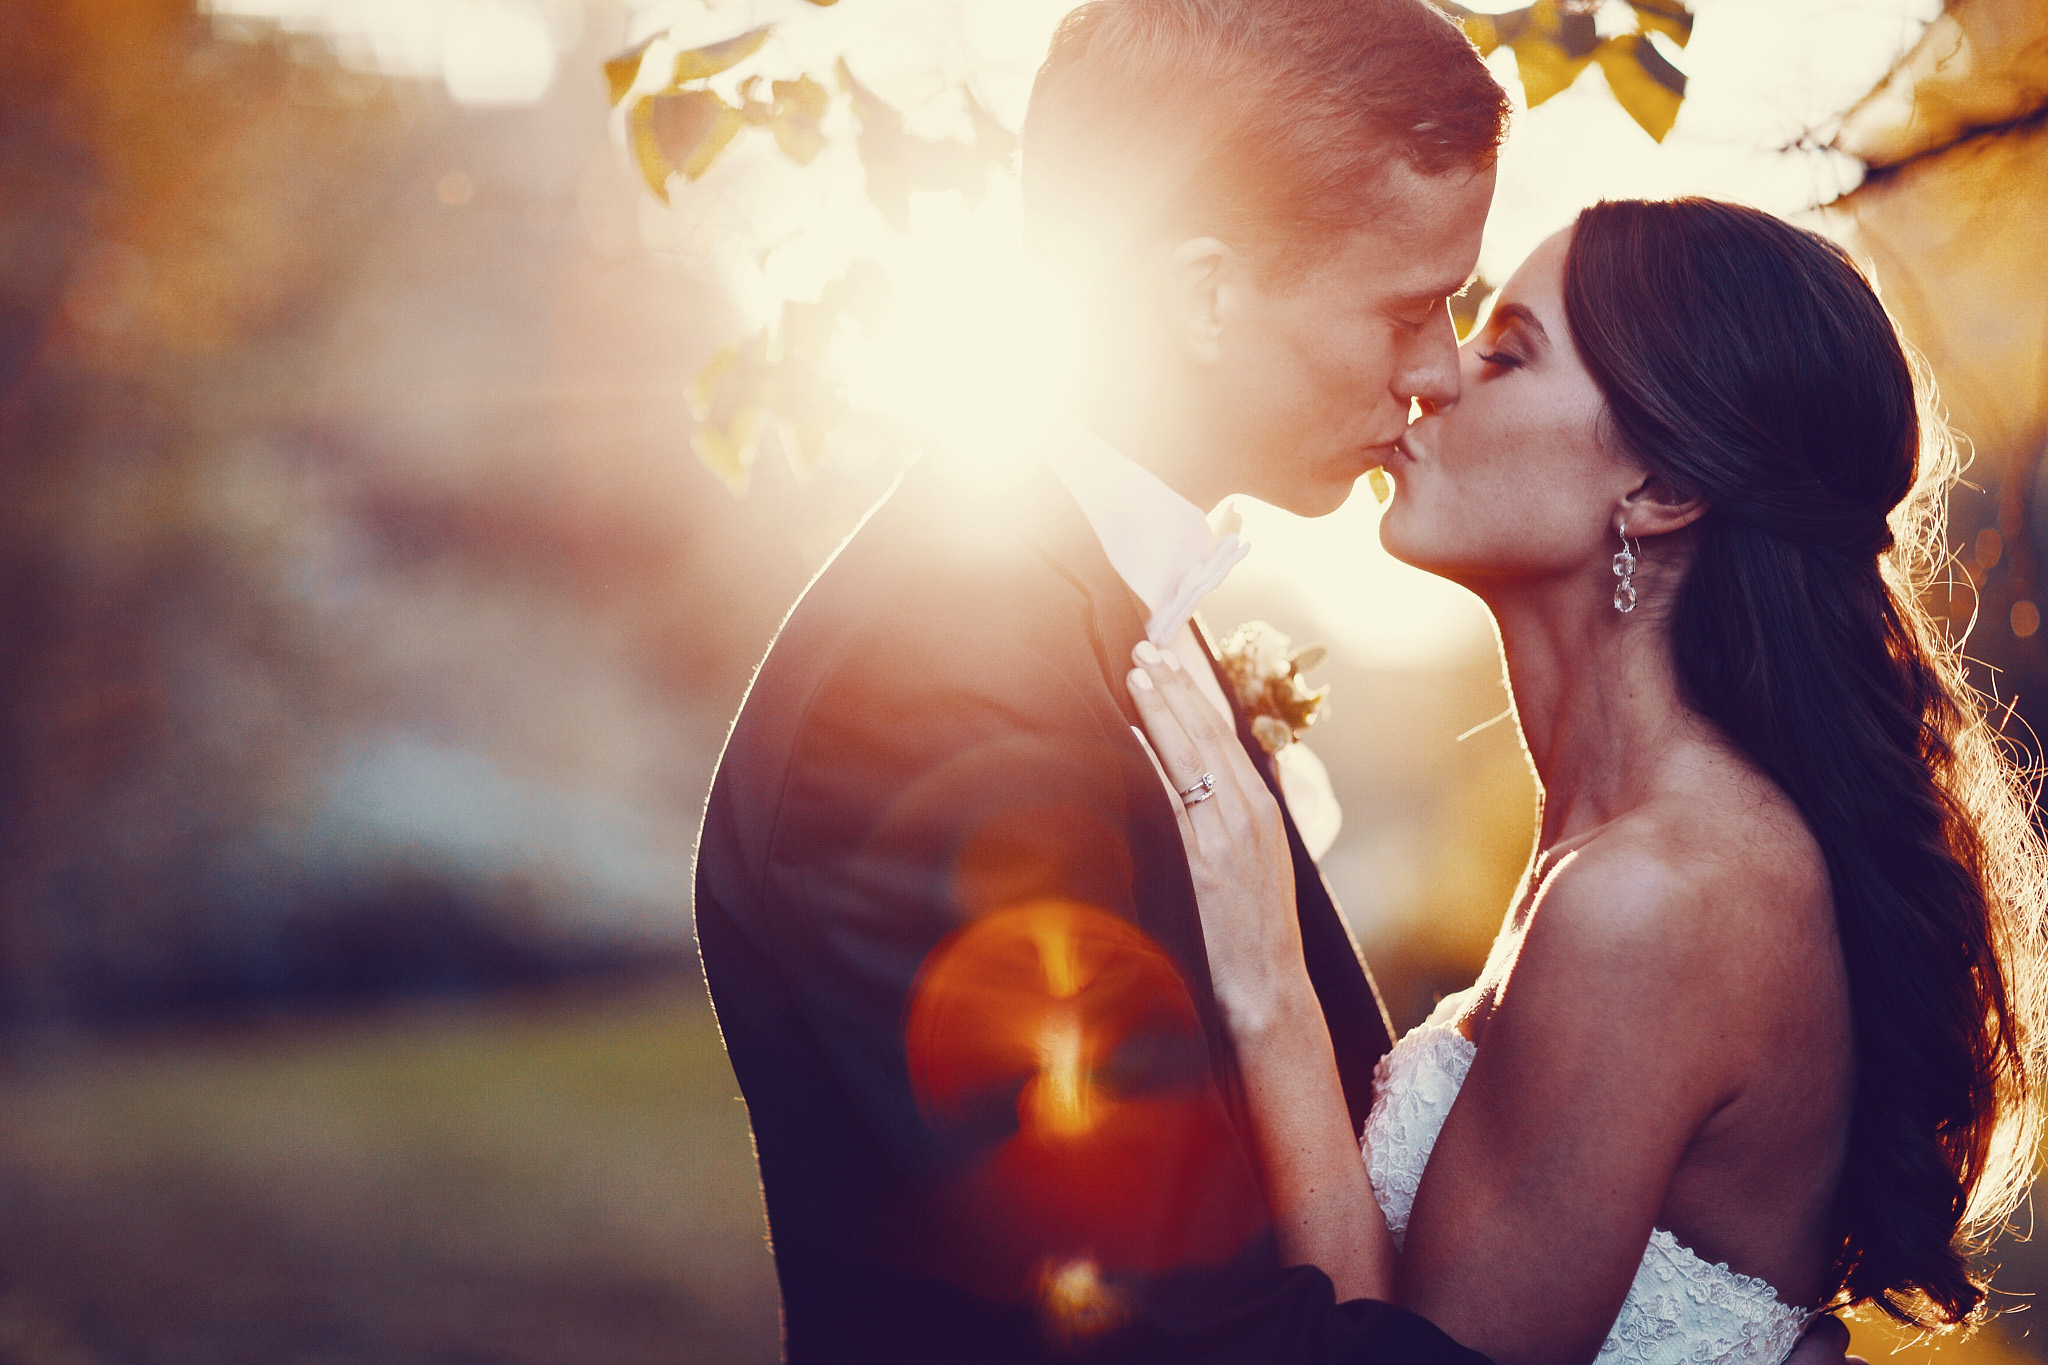 Gorgeous_Wedding_At_The_Outing_Lodge_In_Stillwater_Photography_High_End_Brand_Photographer_Something_Candid_018.JPG